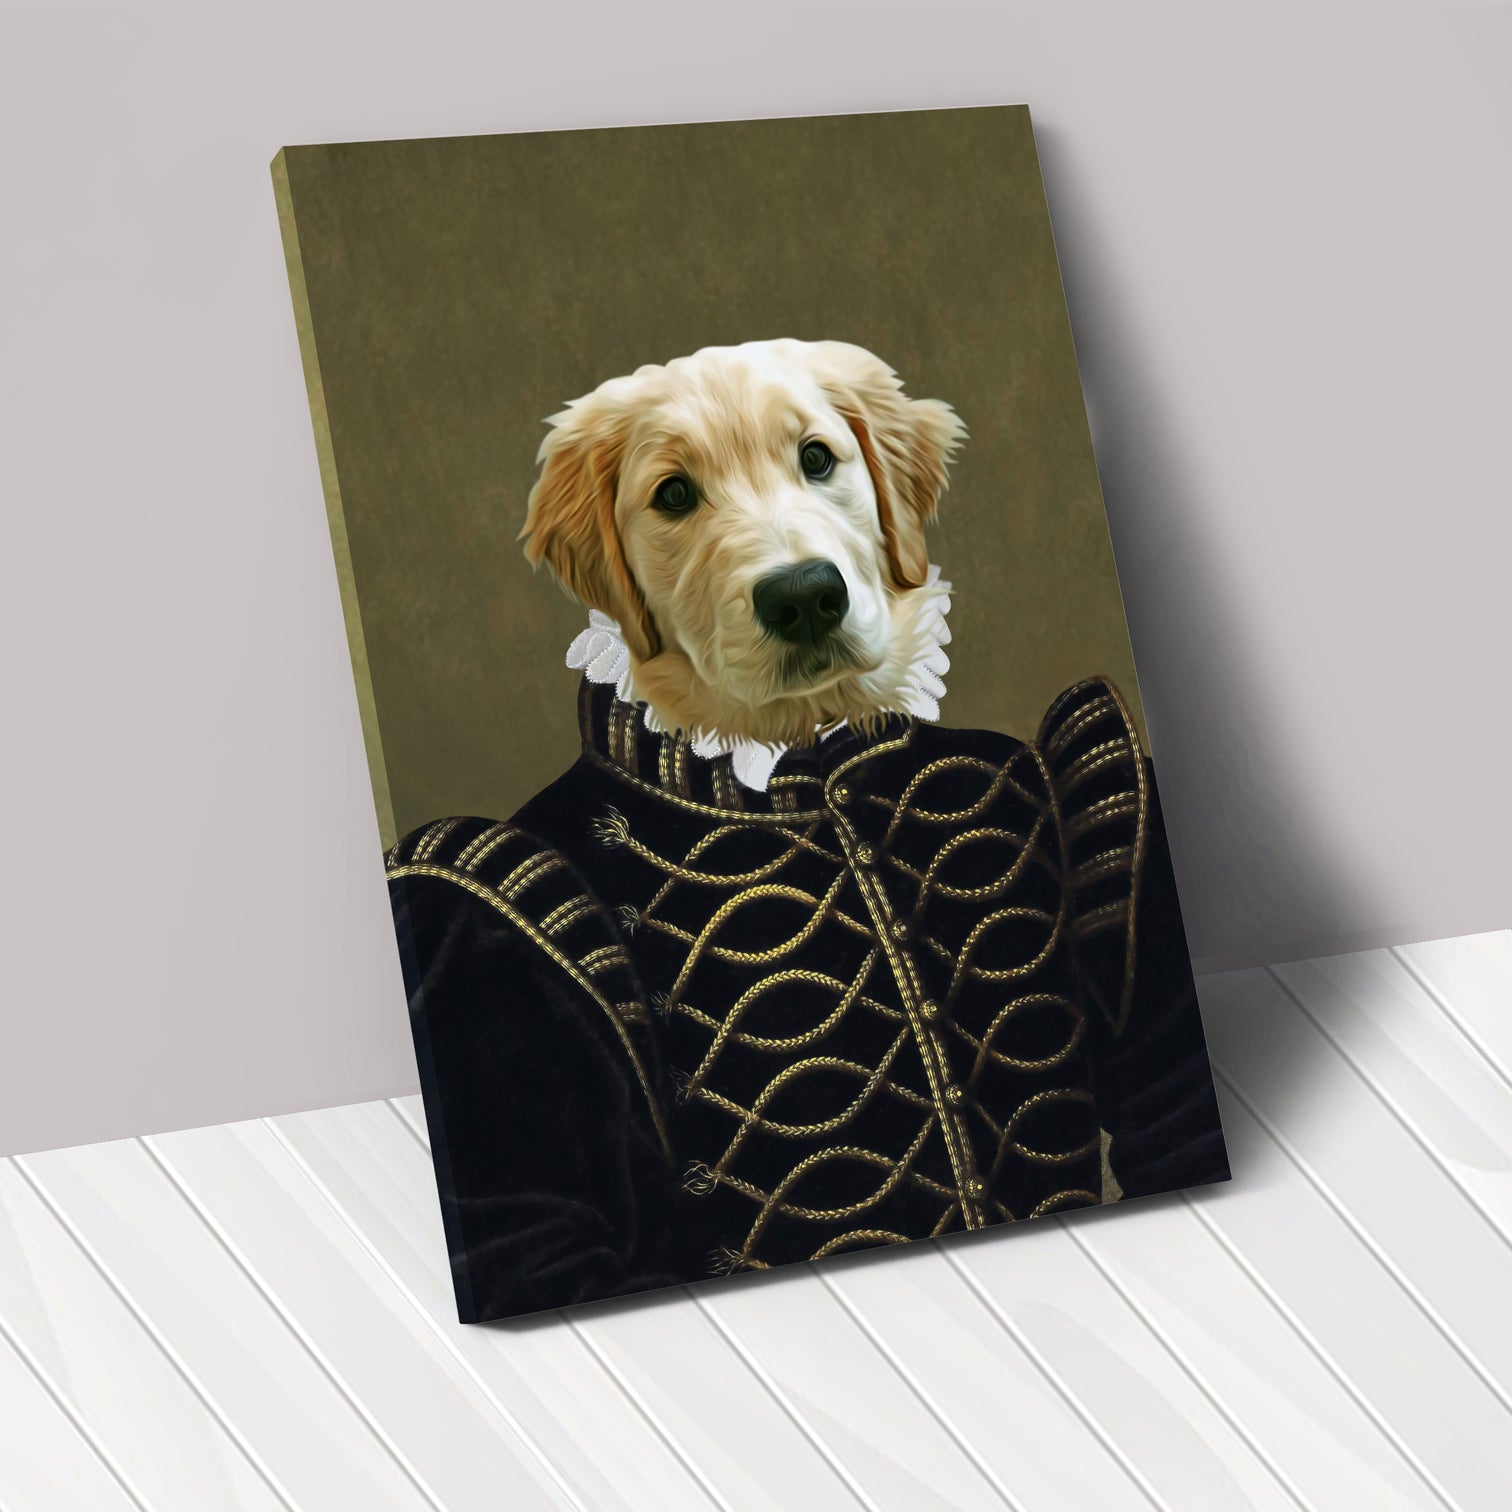 THE NOBLE - Renaissance Pet Portrait